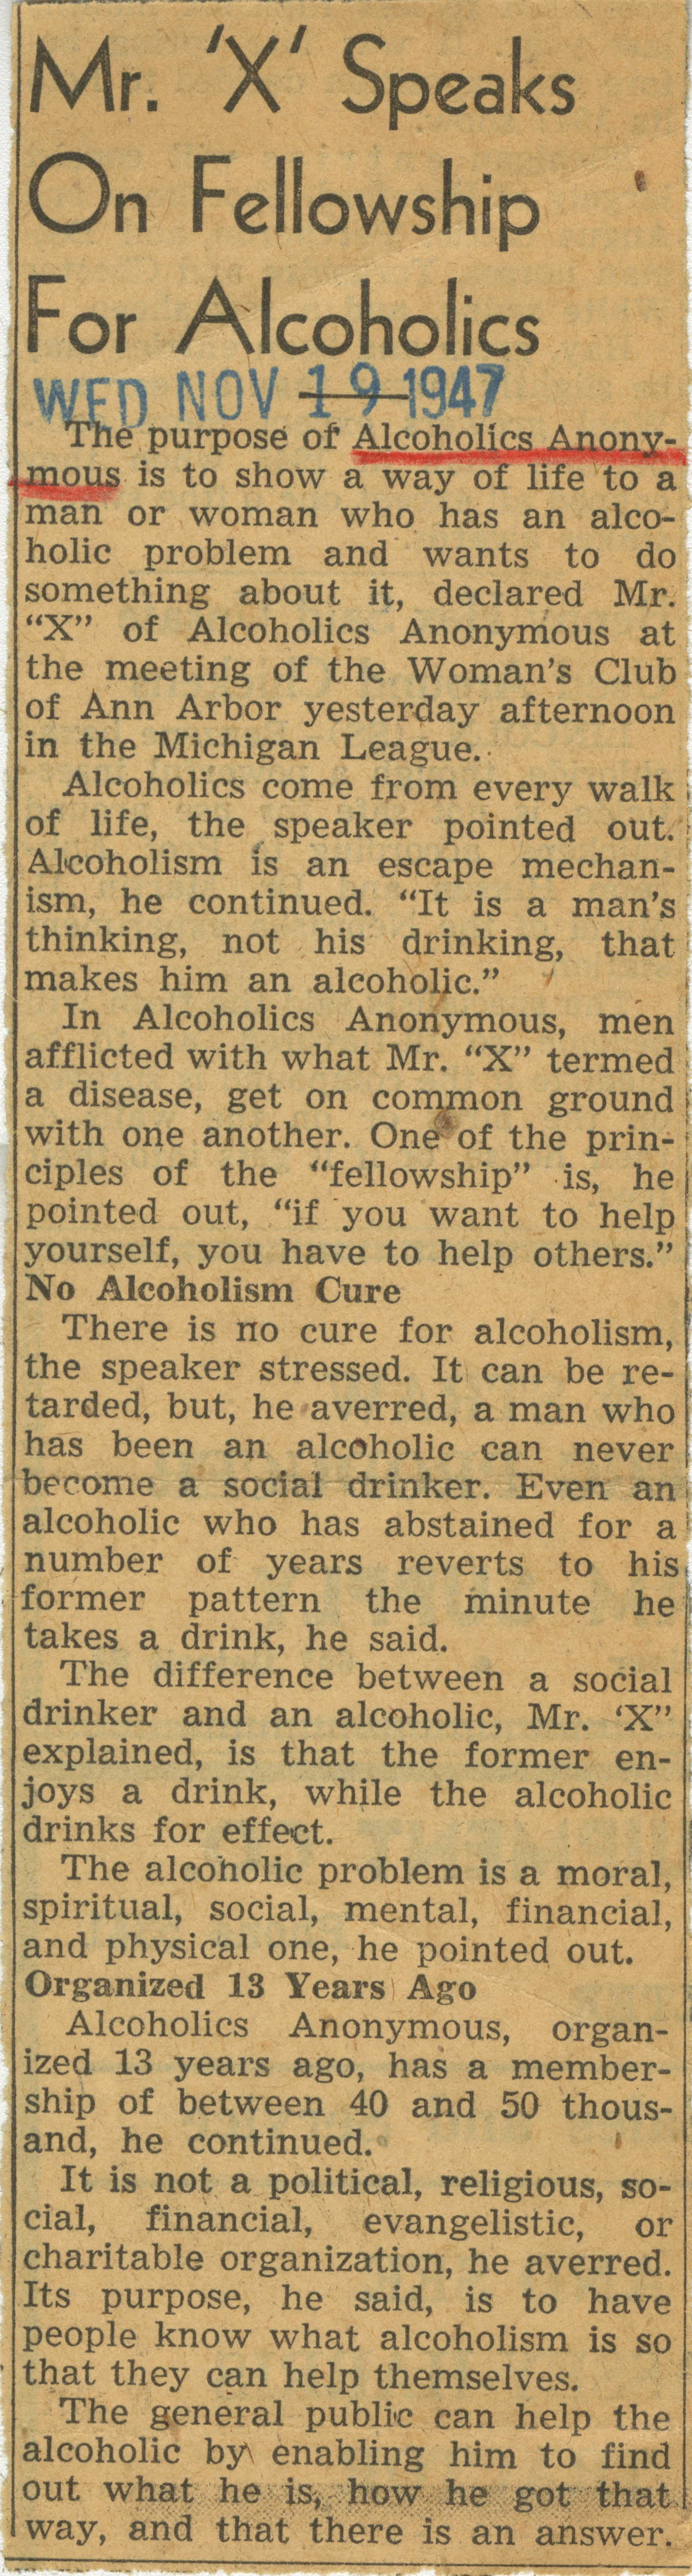 Mr. 'X' Speaks On Fellowship For Alcoholics image